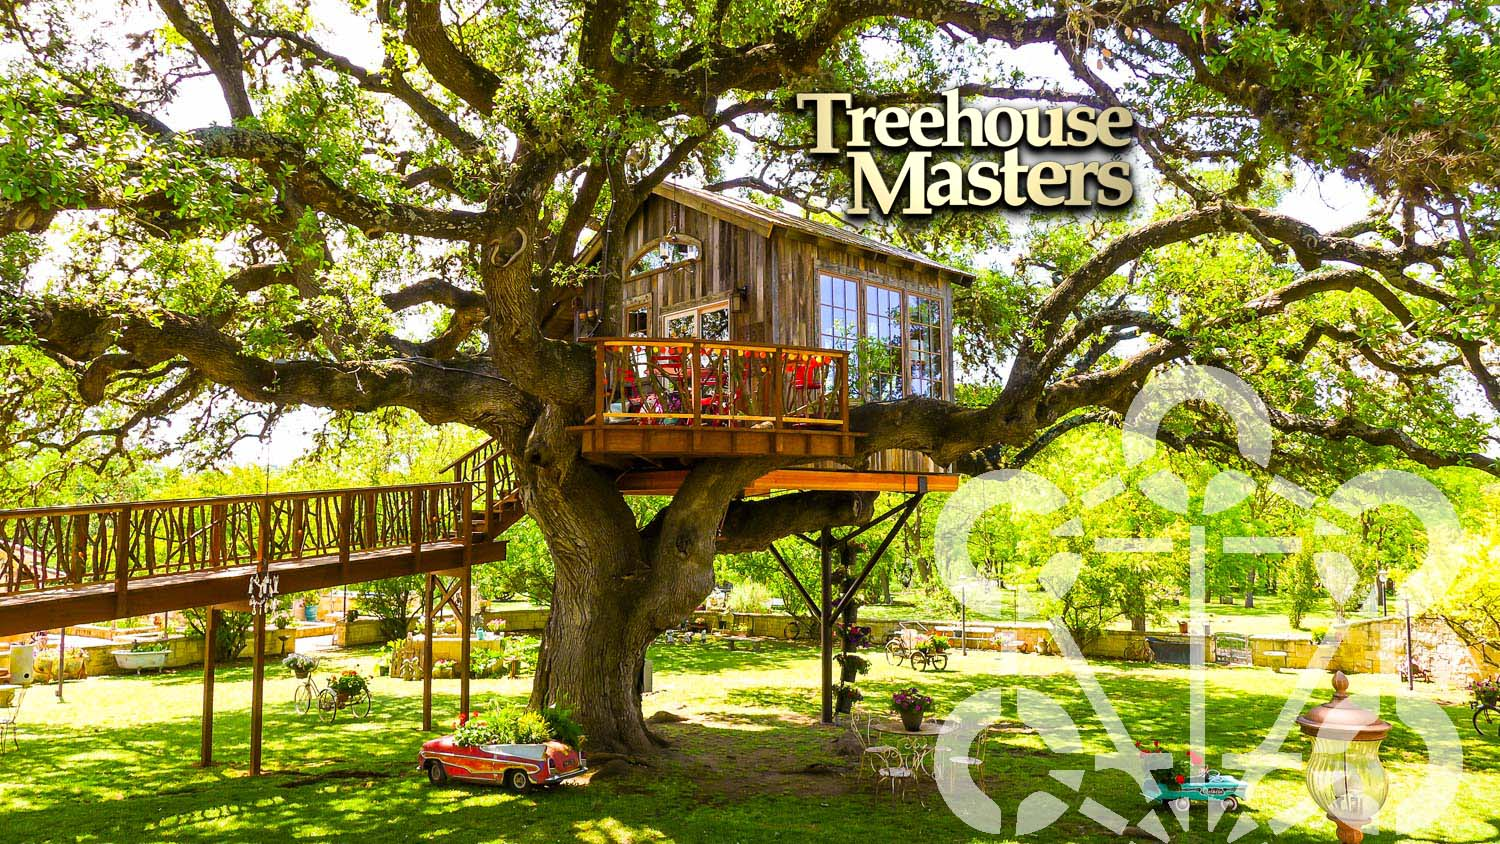 Treehouse Masters - Nelson Treehouse — Nelson Treehouse